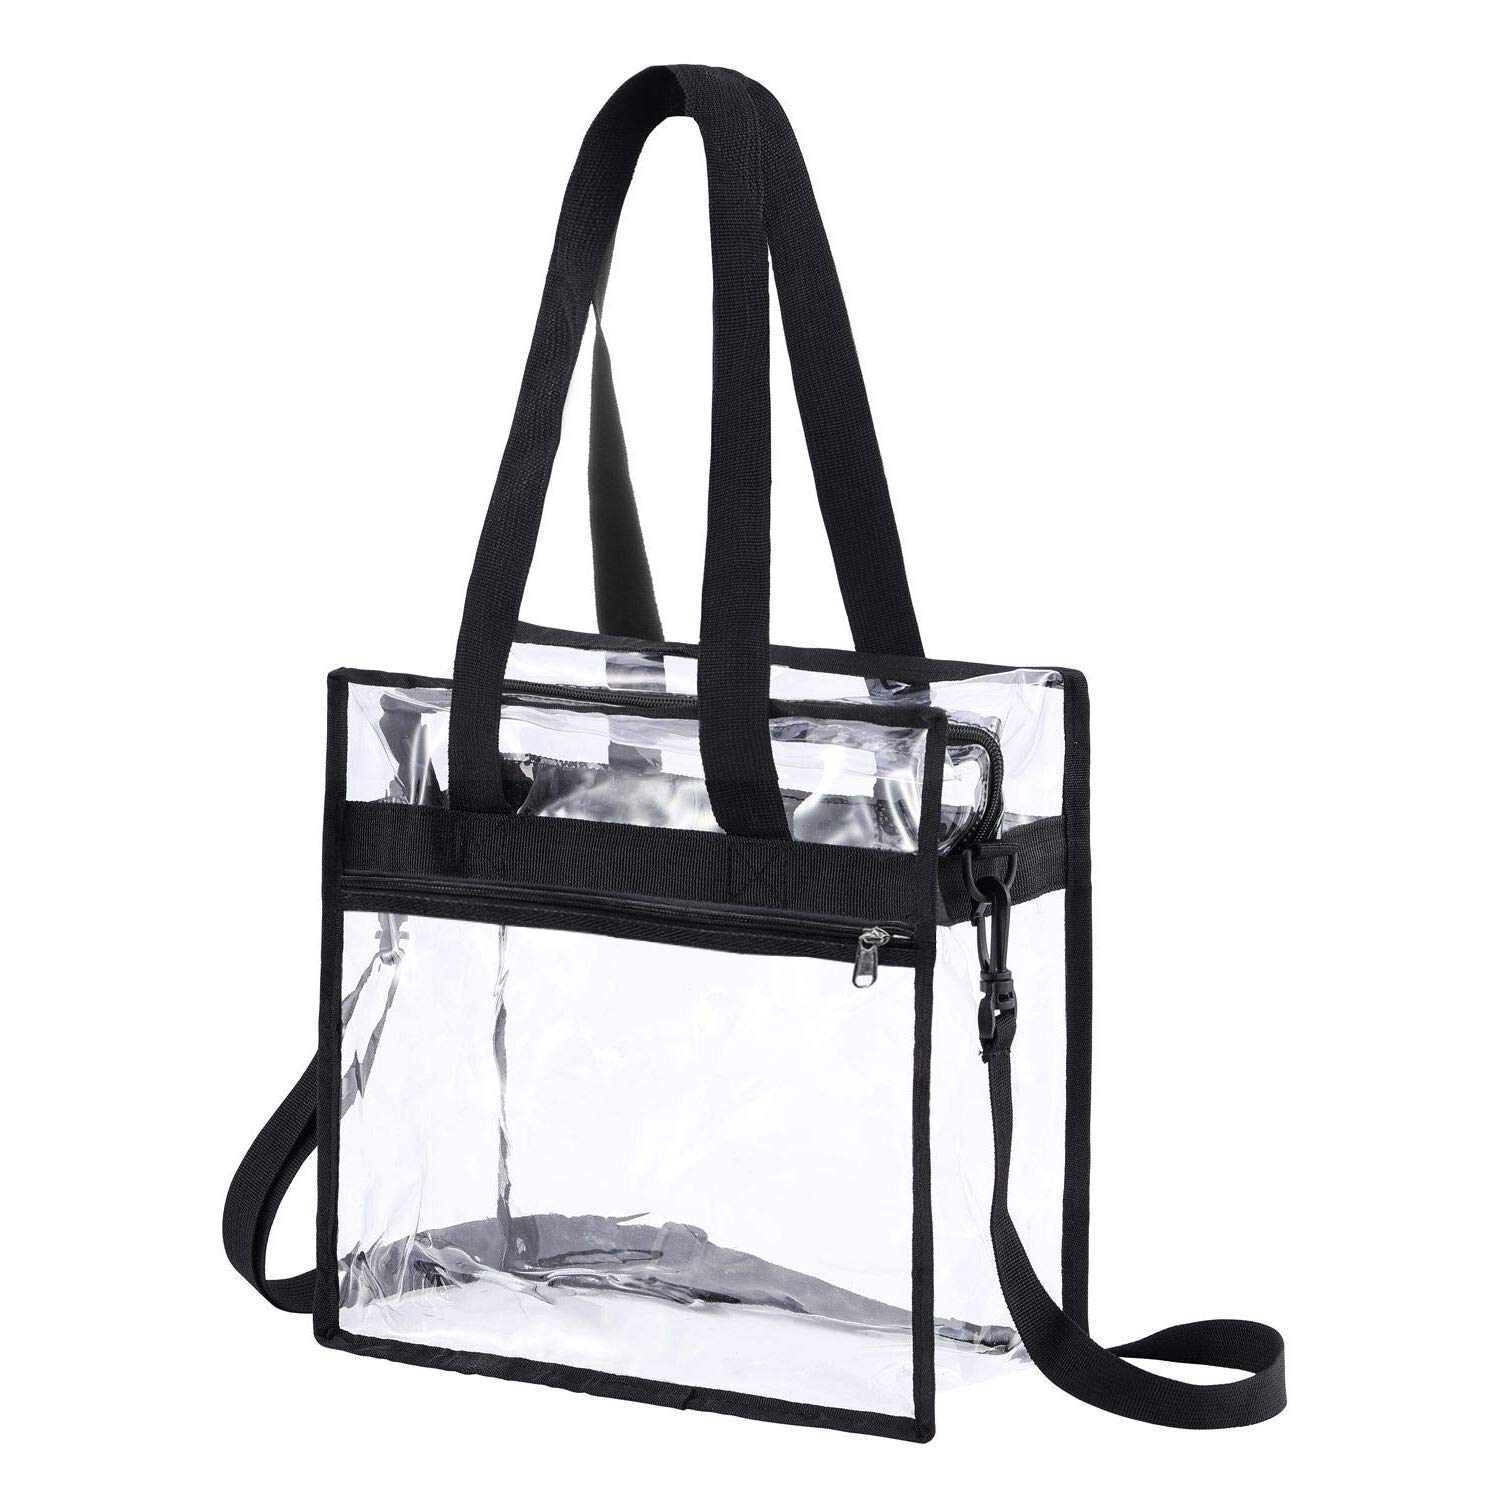 Tvoj poklon Clear Bag Stadium Approved,NCAA NFL/&PGA Security Approved Clear Tote Bag with Adjustable Shoulder Strap Gym Clear Bag for Work Concerts and Travel Sports Games School